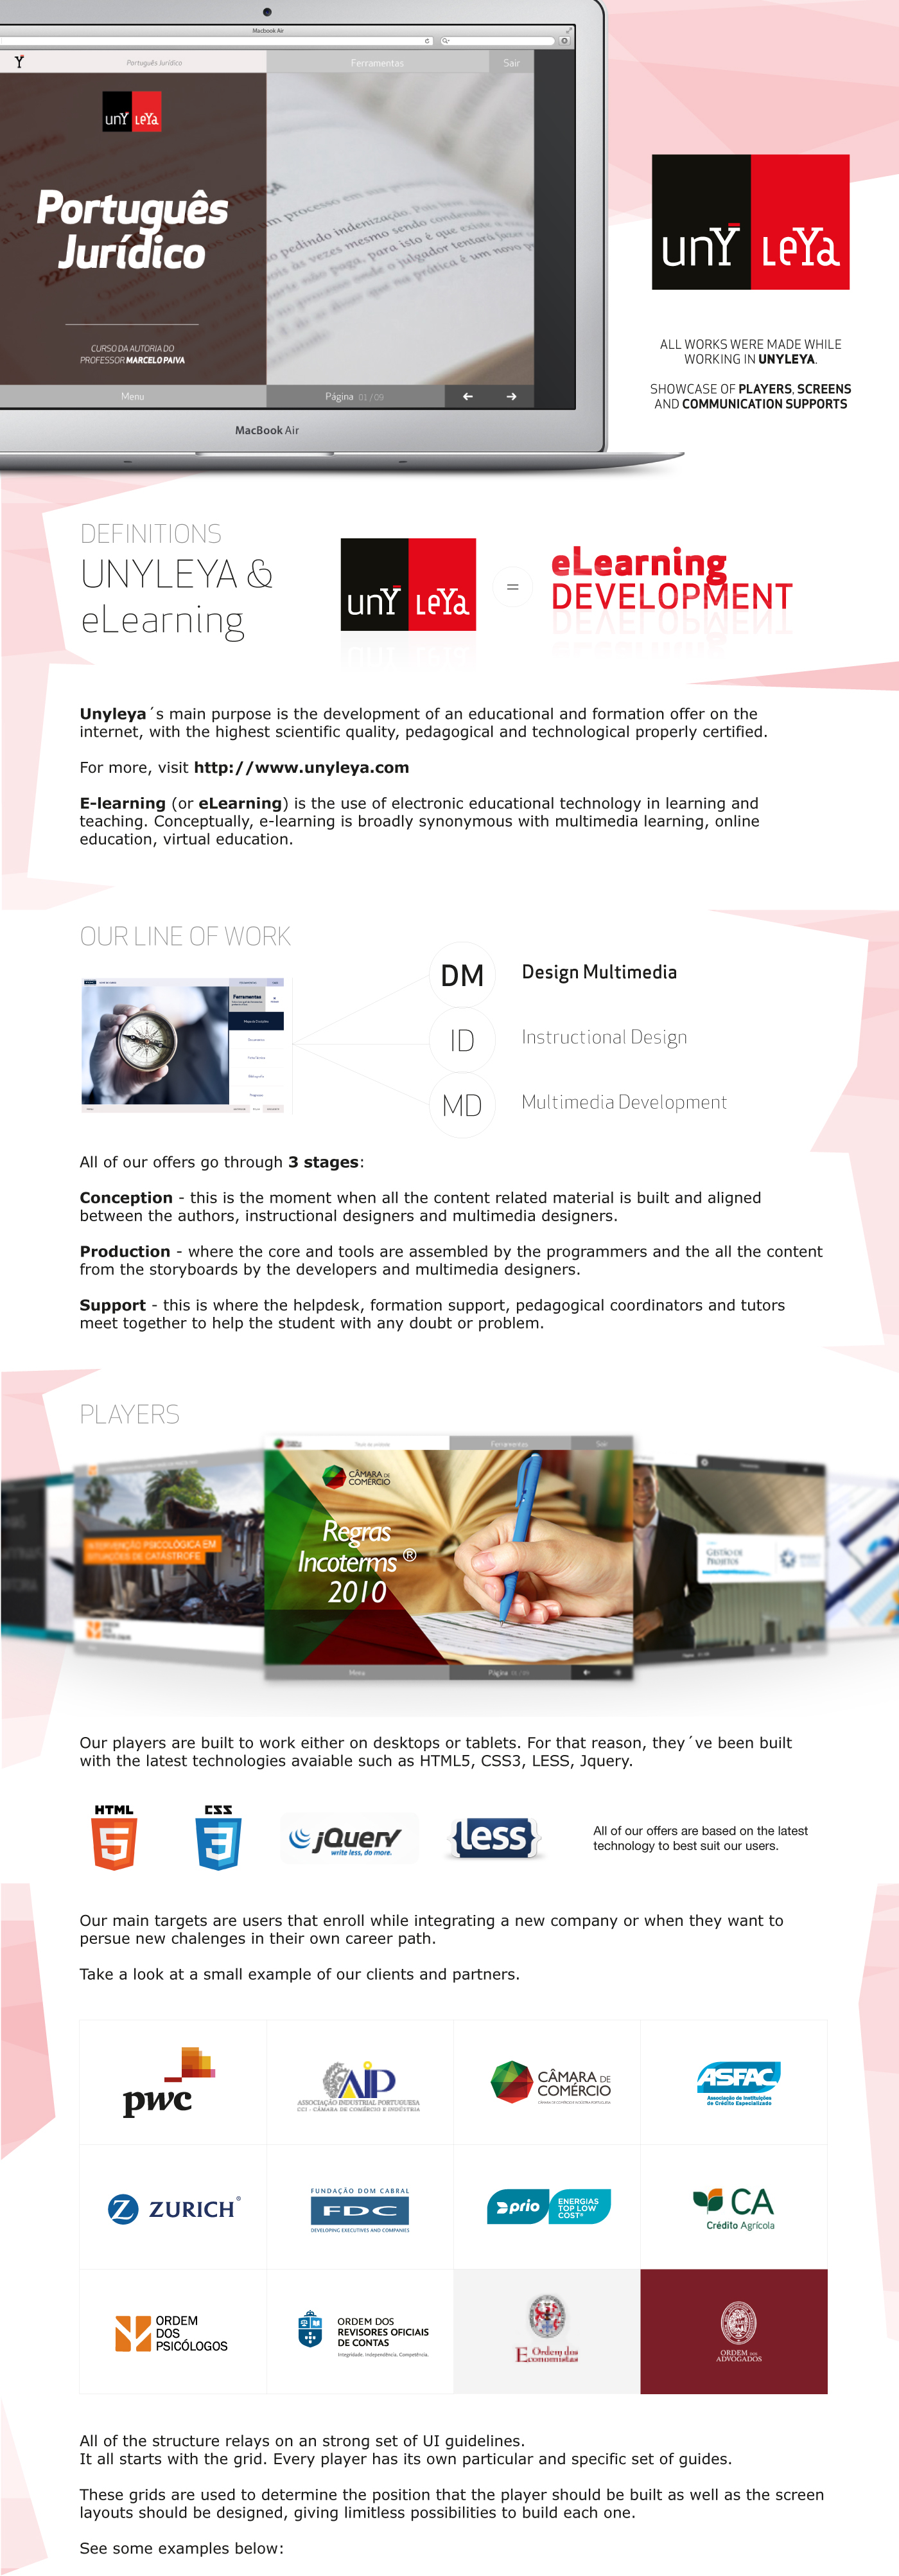 e-learning user interface user experience mock-ups Webdesign interaction html5 css3 jquery less Instructional Design development